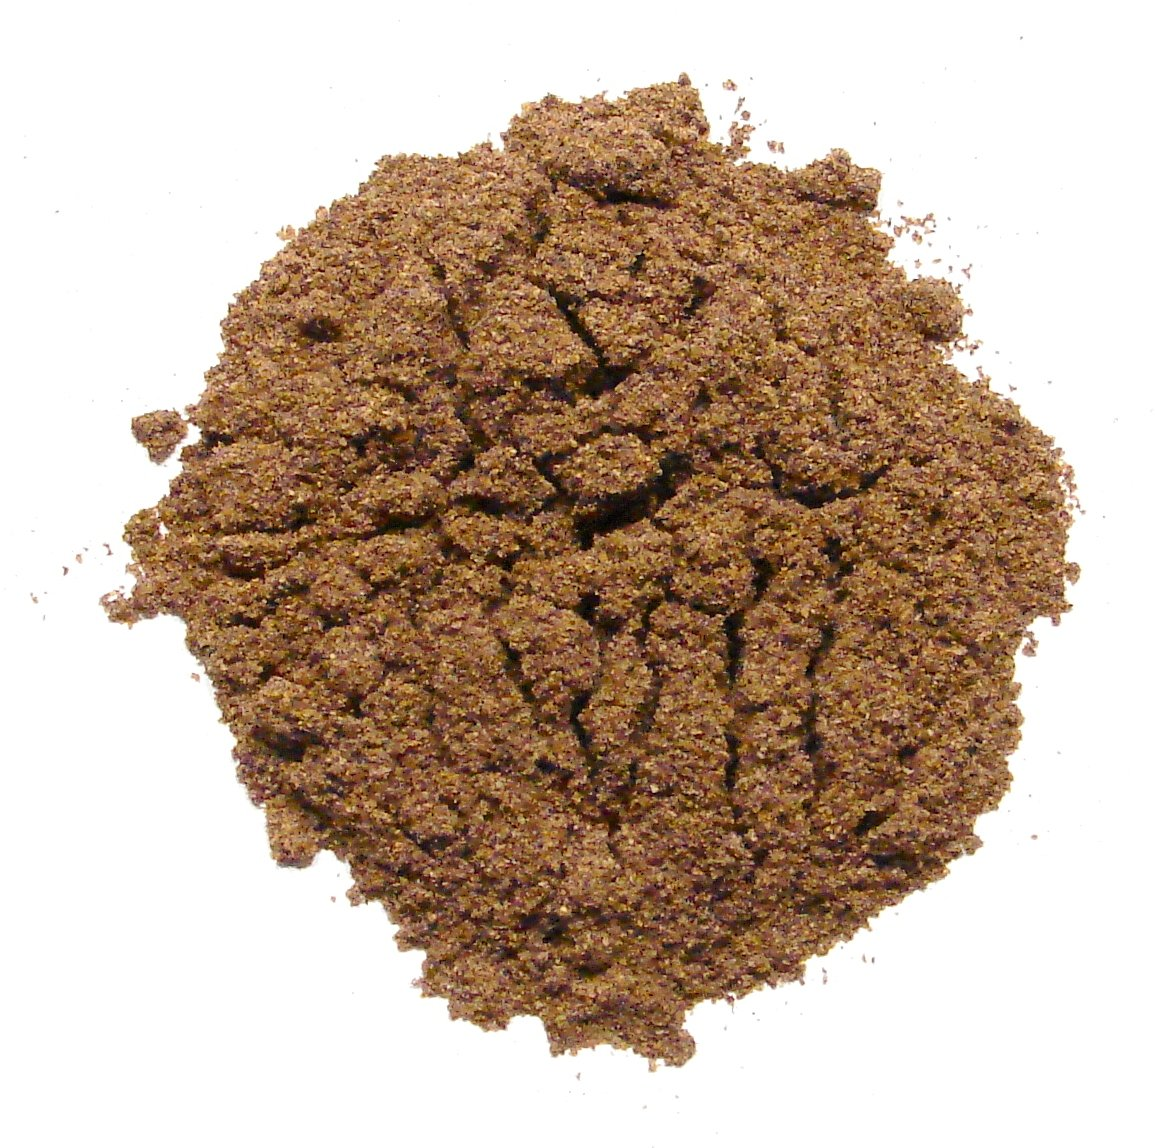 Saw Palmetto Powder - 4 Ounces - Ground Dried Saw Palmetto Berries by Denver Spice